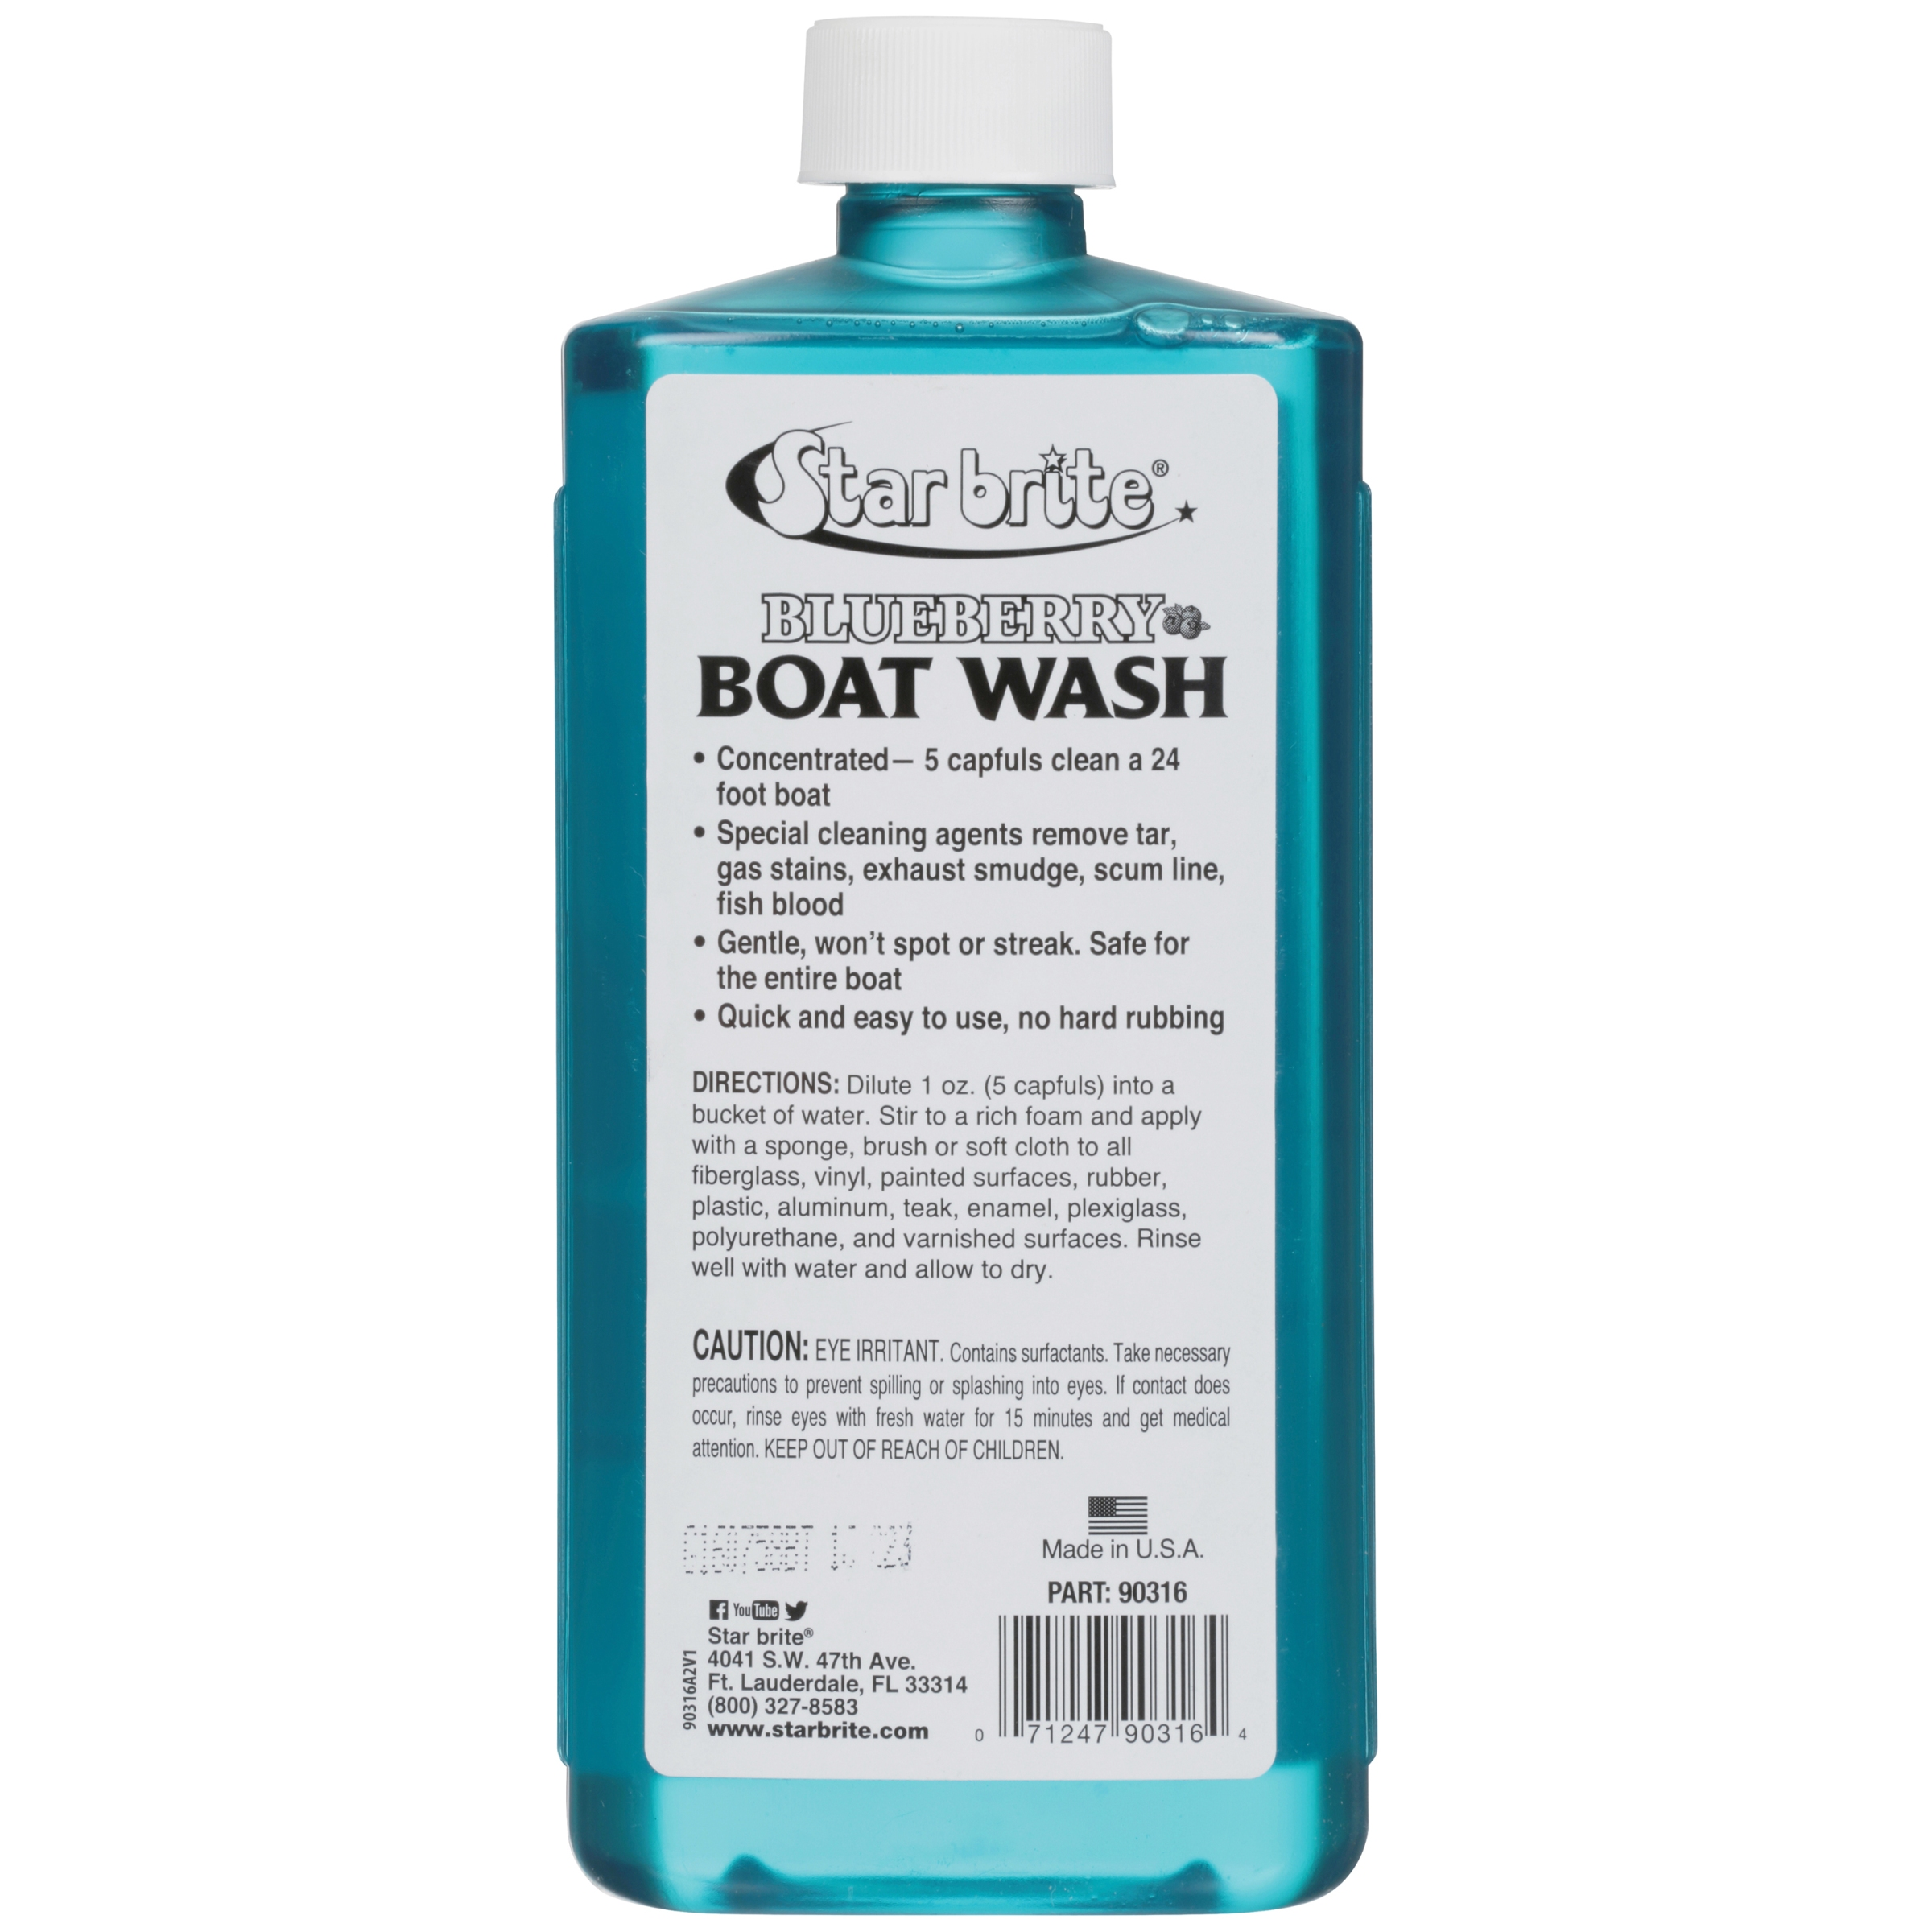 Star Brite Blueberry Boat Wash, 16 oz